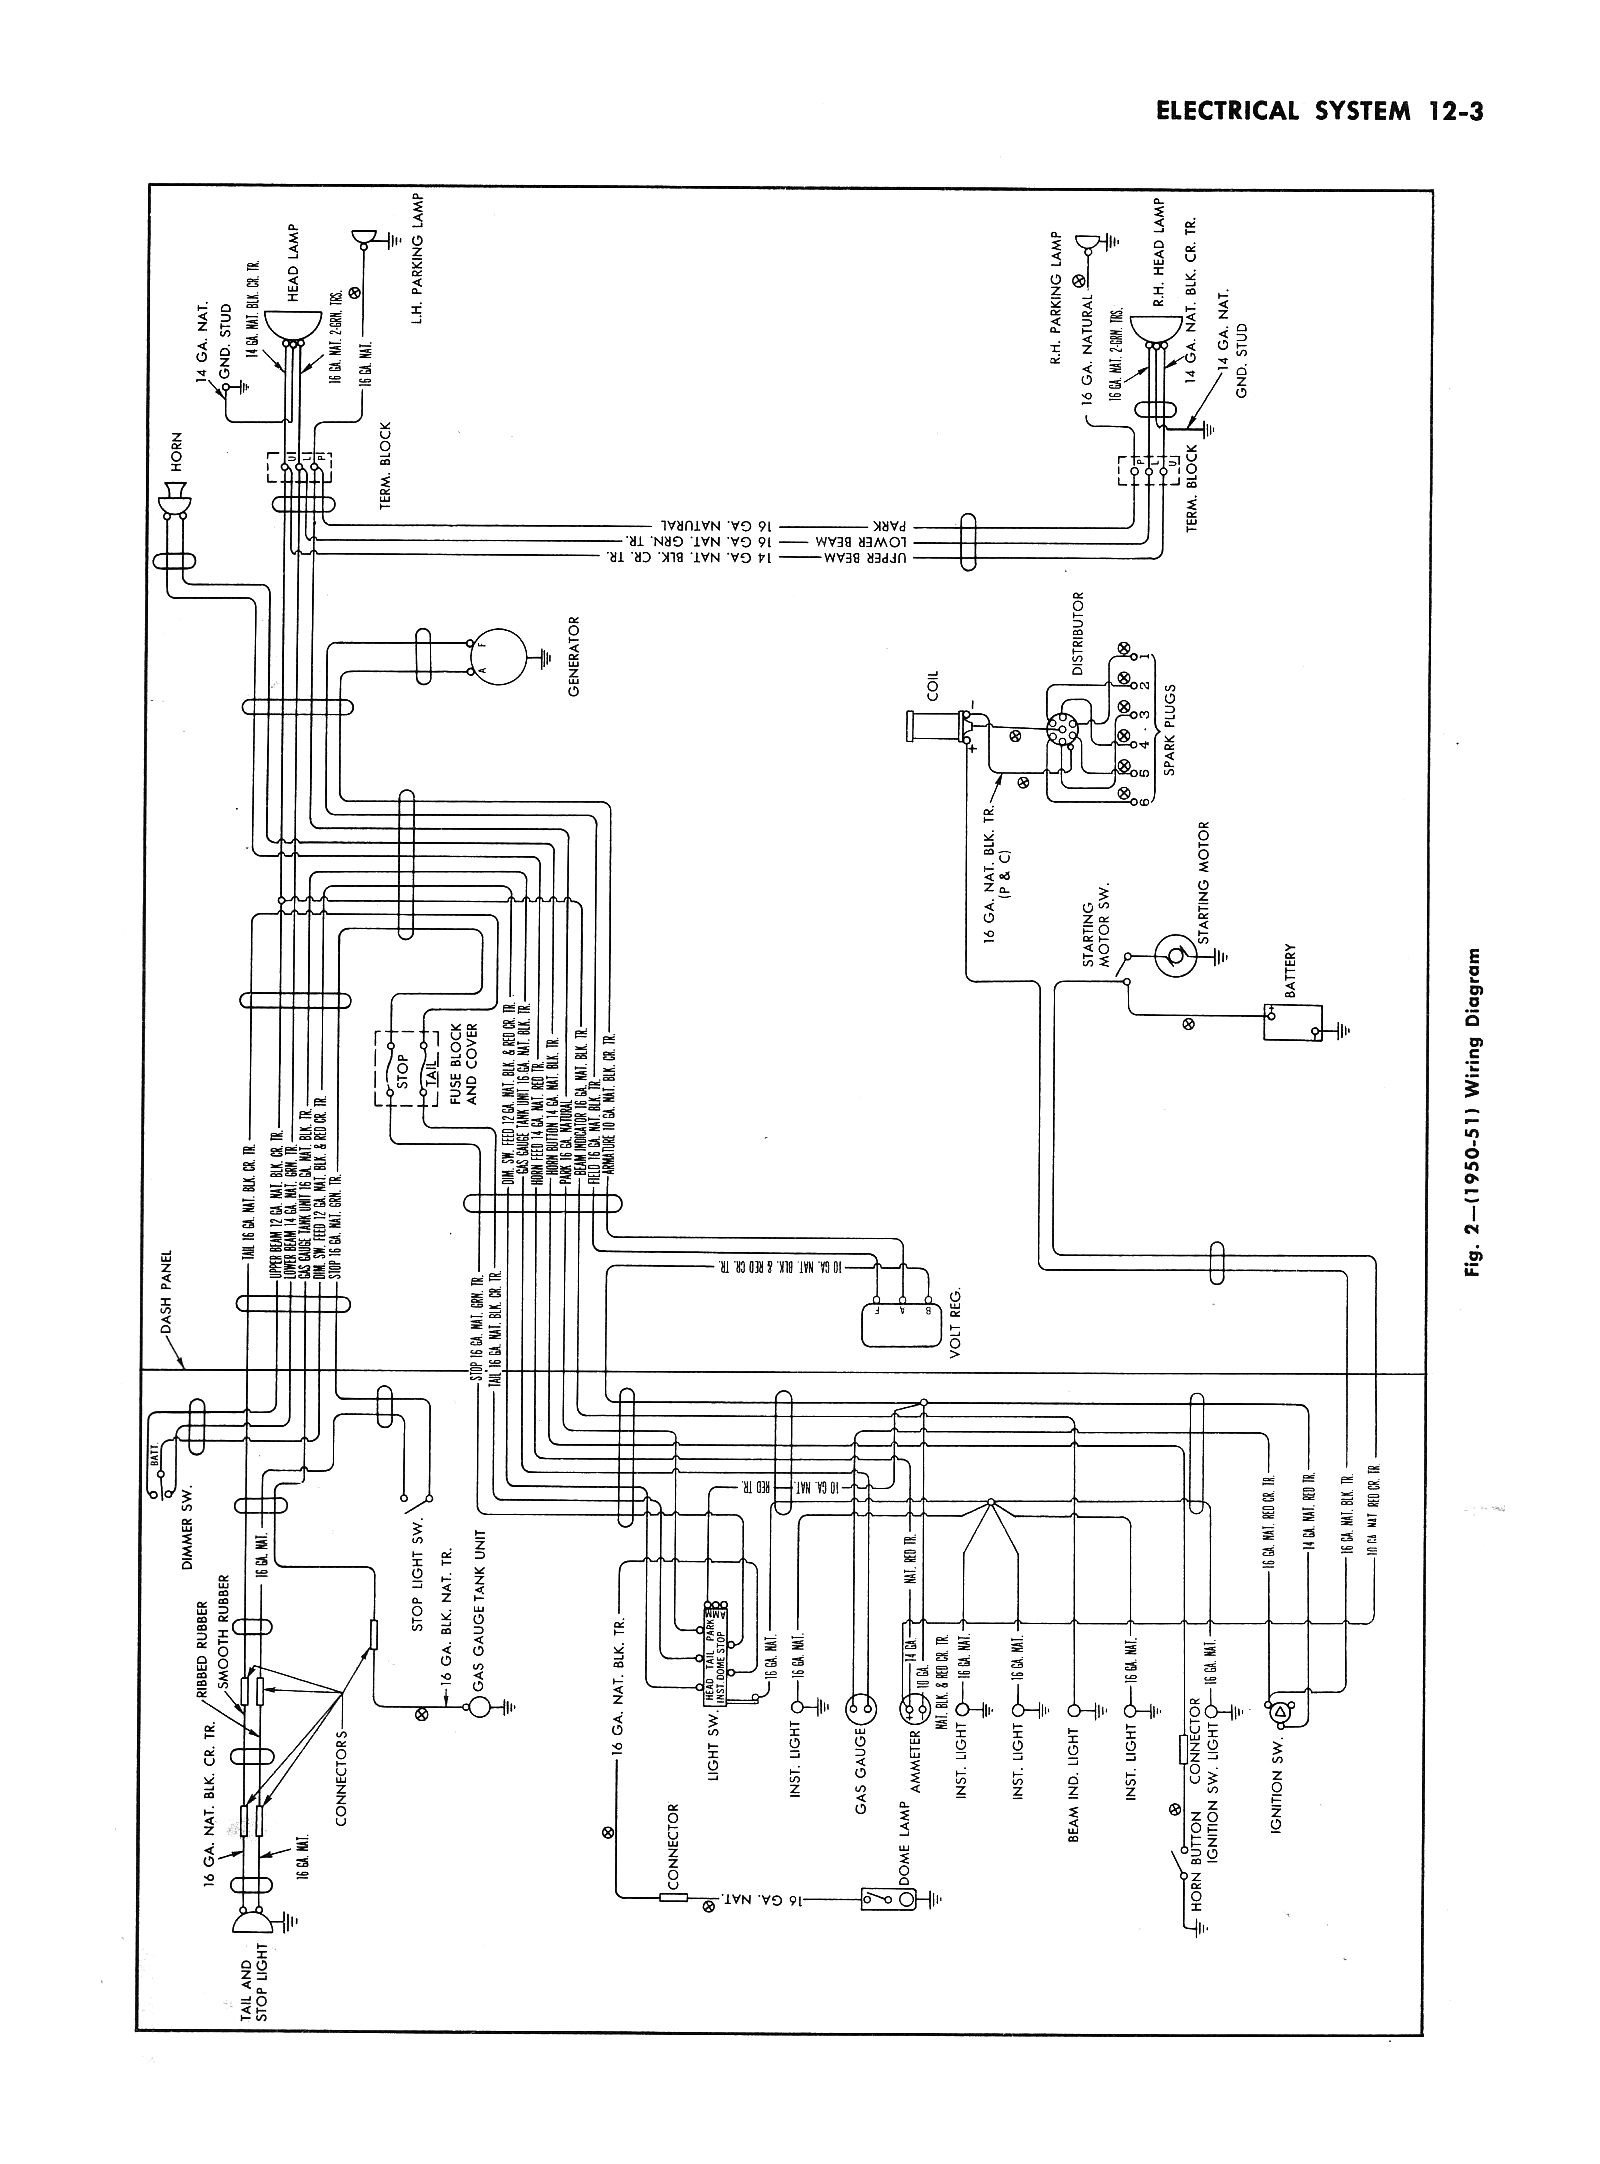 52 ford f1 wiring daily update wiring diagram Mounting a 302 in a Ford 51 F1